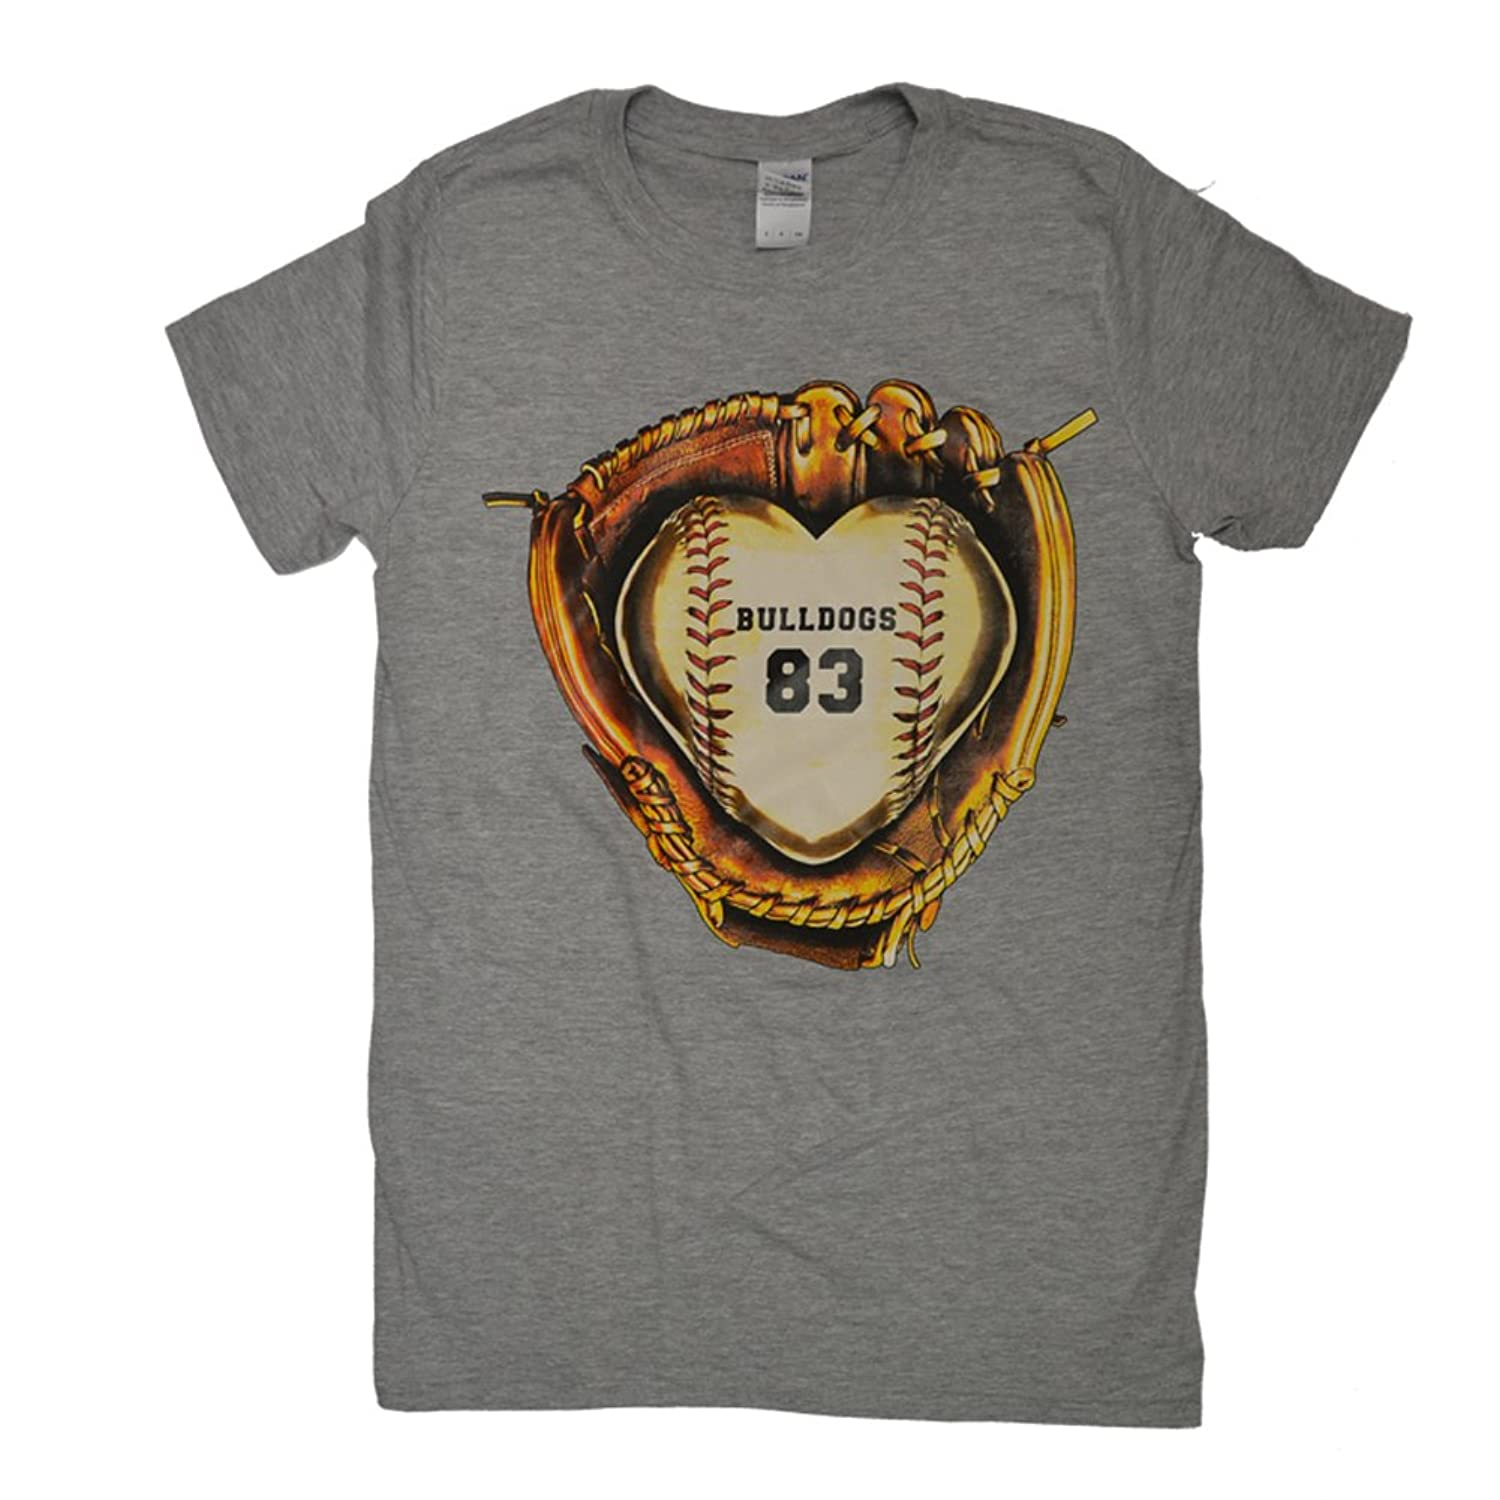 Tees2urdoor Baseball Glove Monogram Sports Grey T-shirt Name/Number